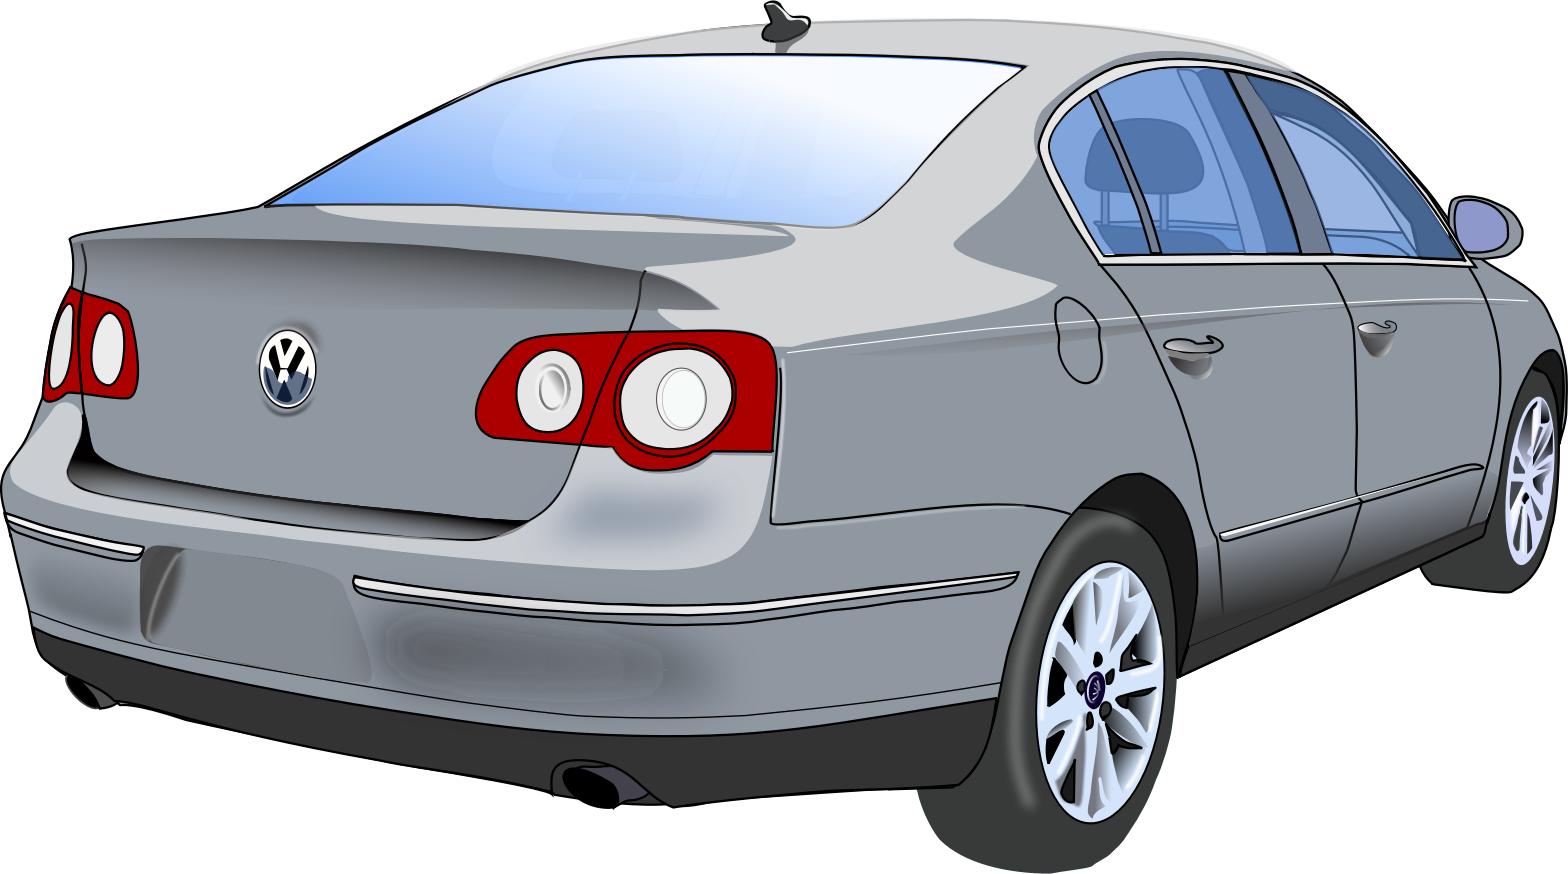 German car clipart svg library Family car PNG Clipart - Download free Car images in PNG svg library